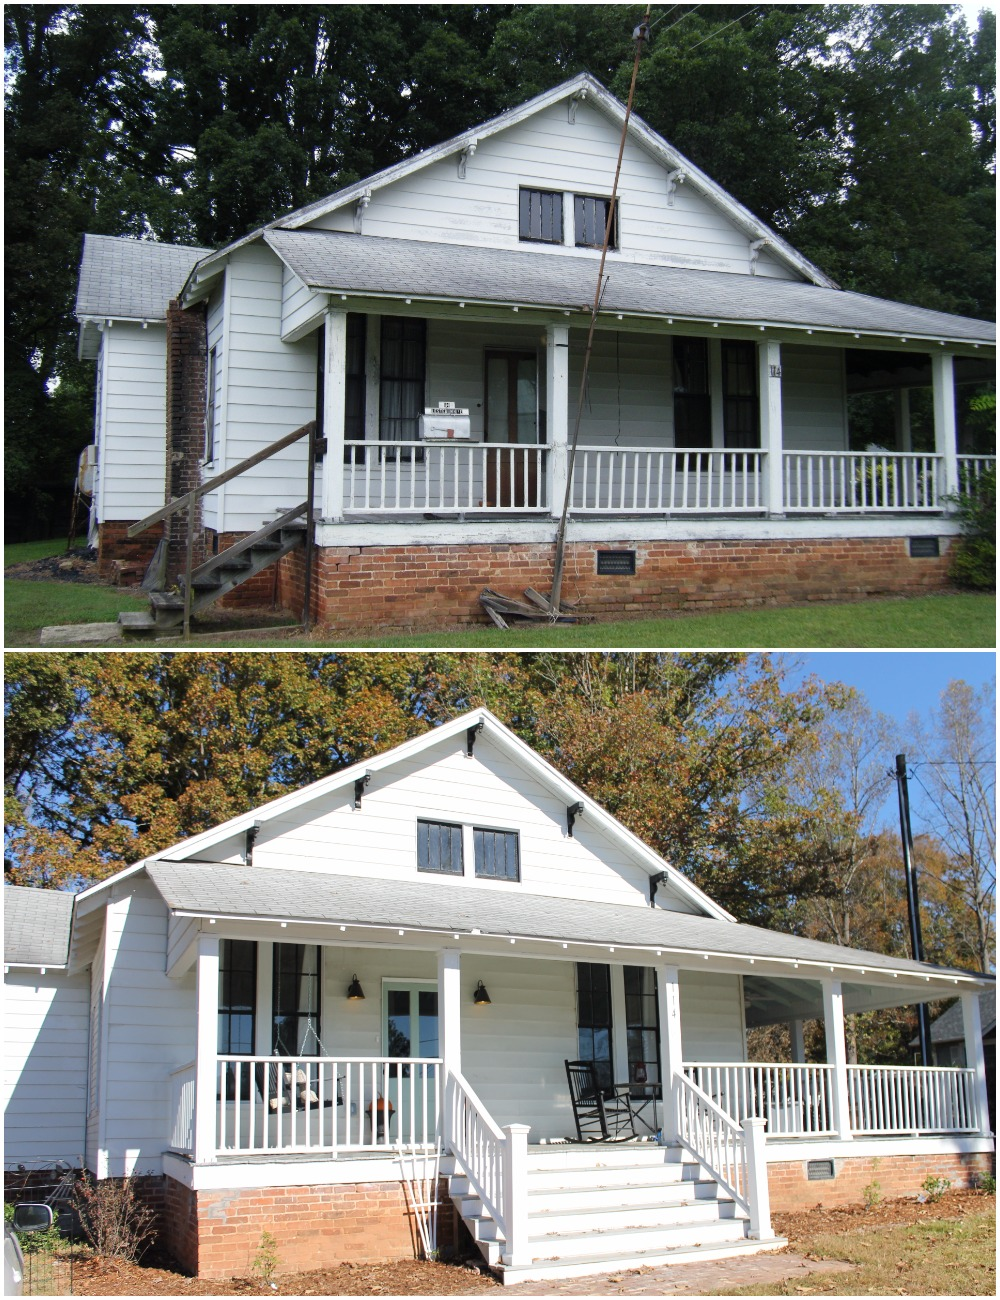 Elizabeth Burns Design  Budget-Friendly Fixer Upper Farmhouse Before and After House Flip - DIY Curb Appeal White Farm House Cottage with Black Windows and Wide Front Steps to Front Porch - Wythe Blue  (4).jpg